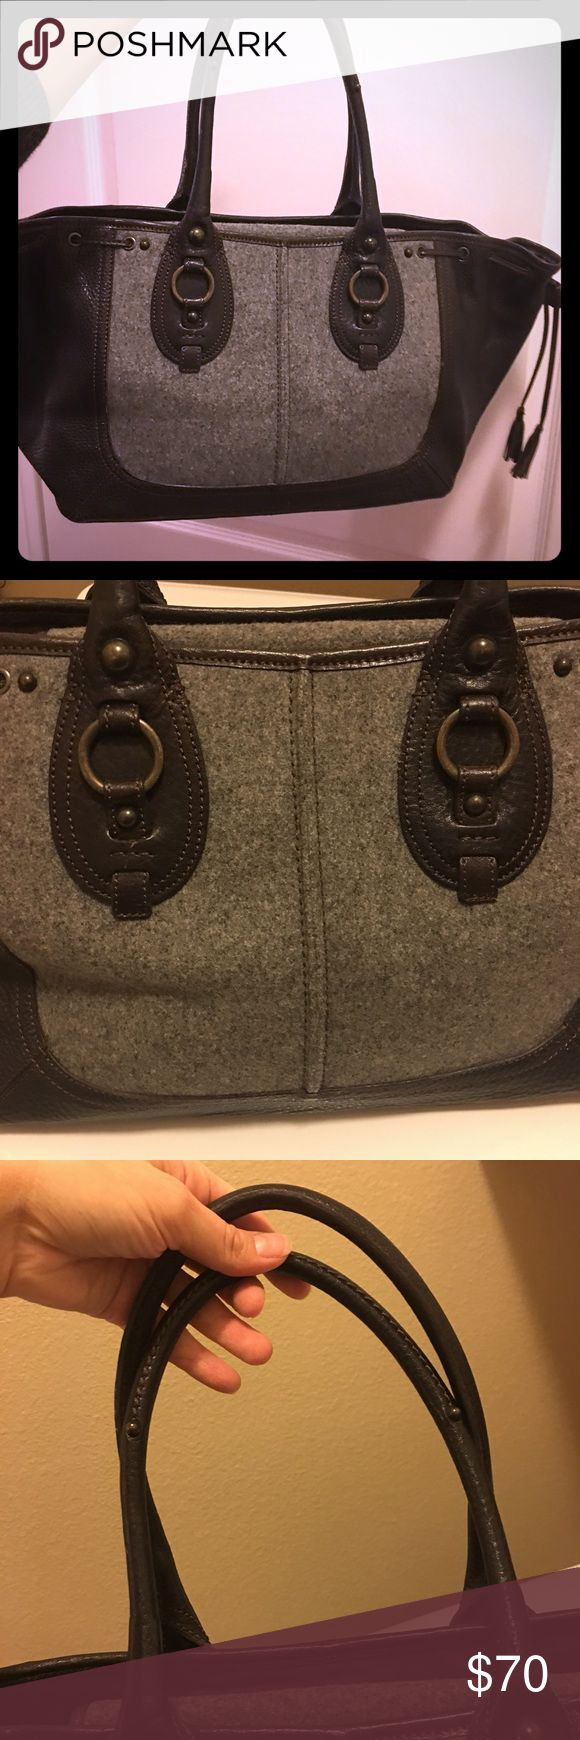 Banana republic felt and leather tote like new Banana republic felt and leather tote like new! Only a small scuff on the bottom shown in pictures Banana Republic Bags Totes